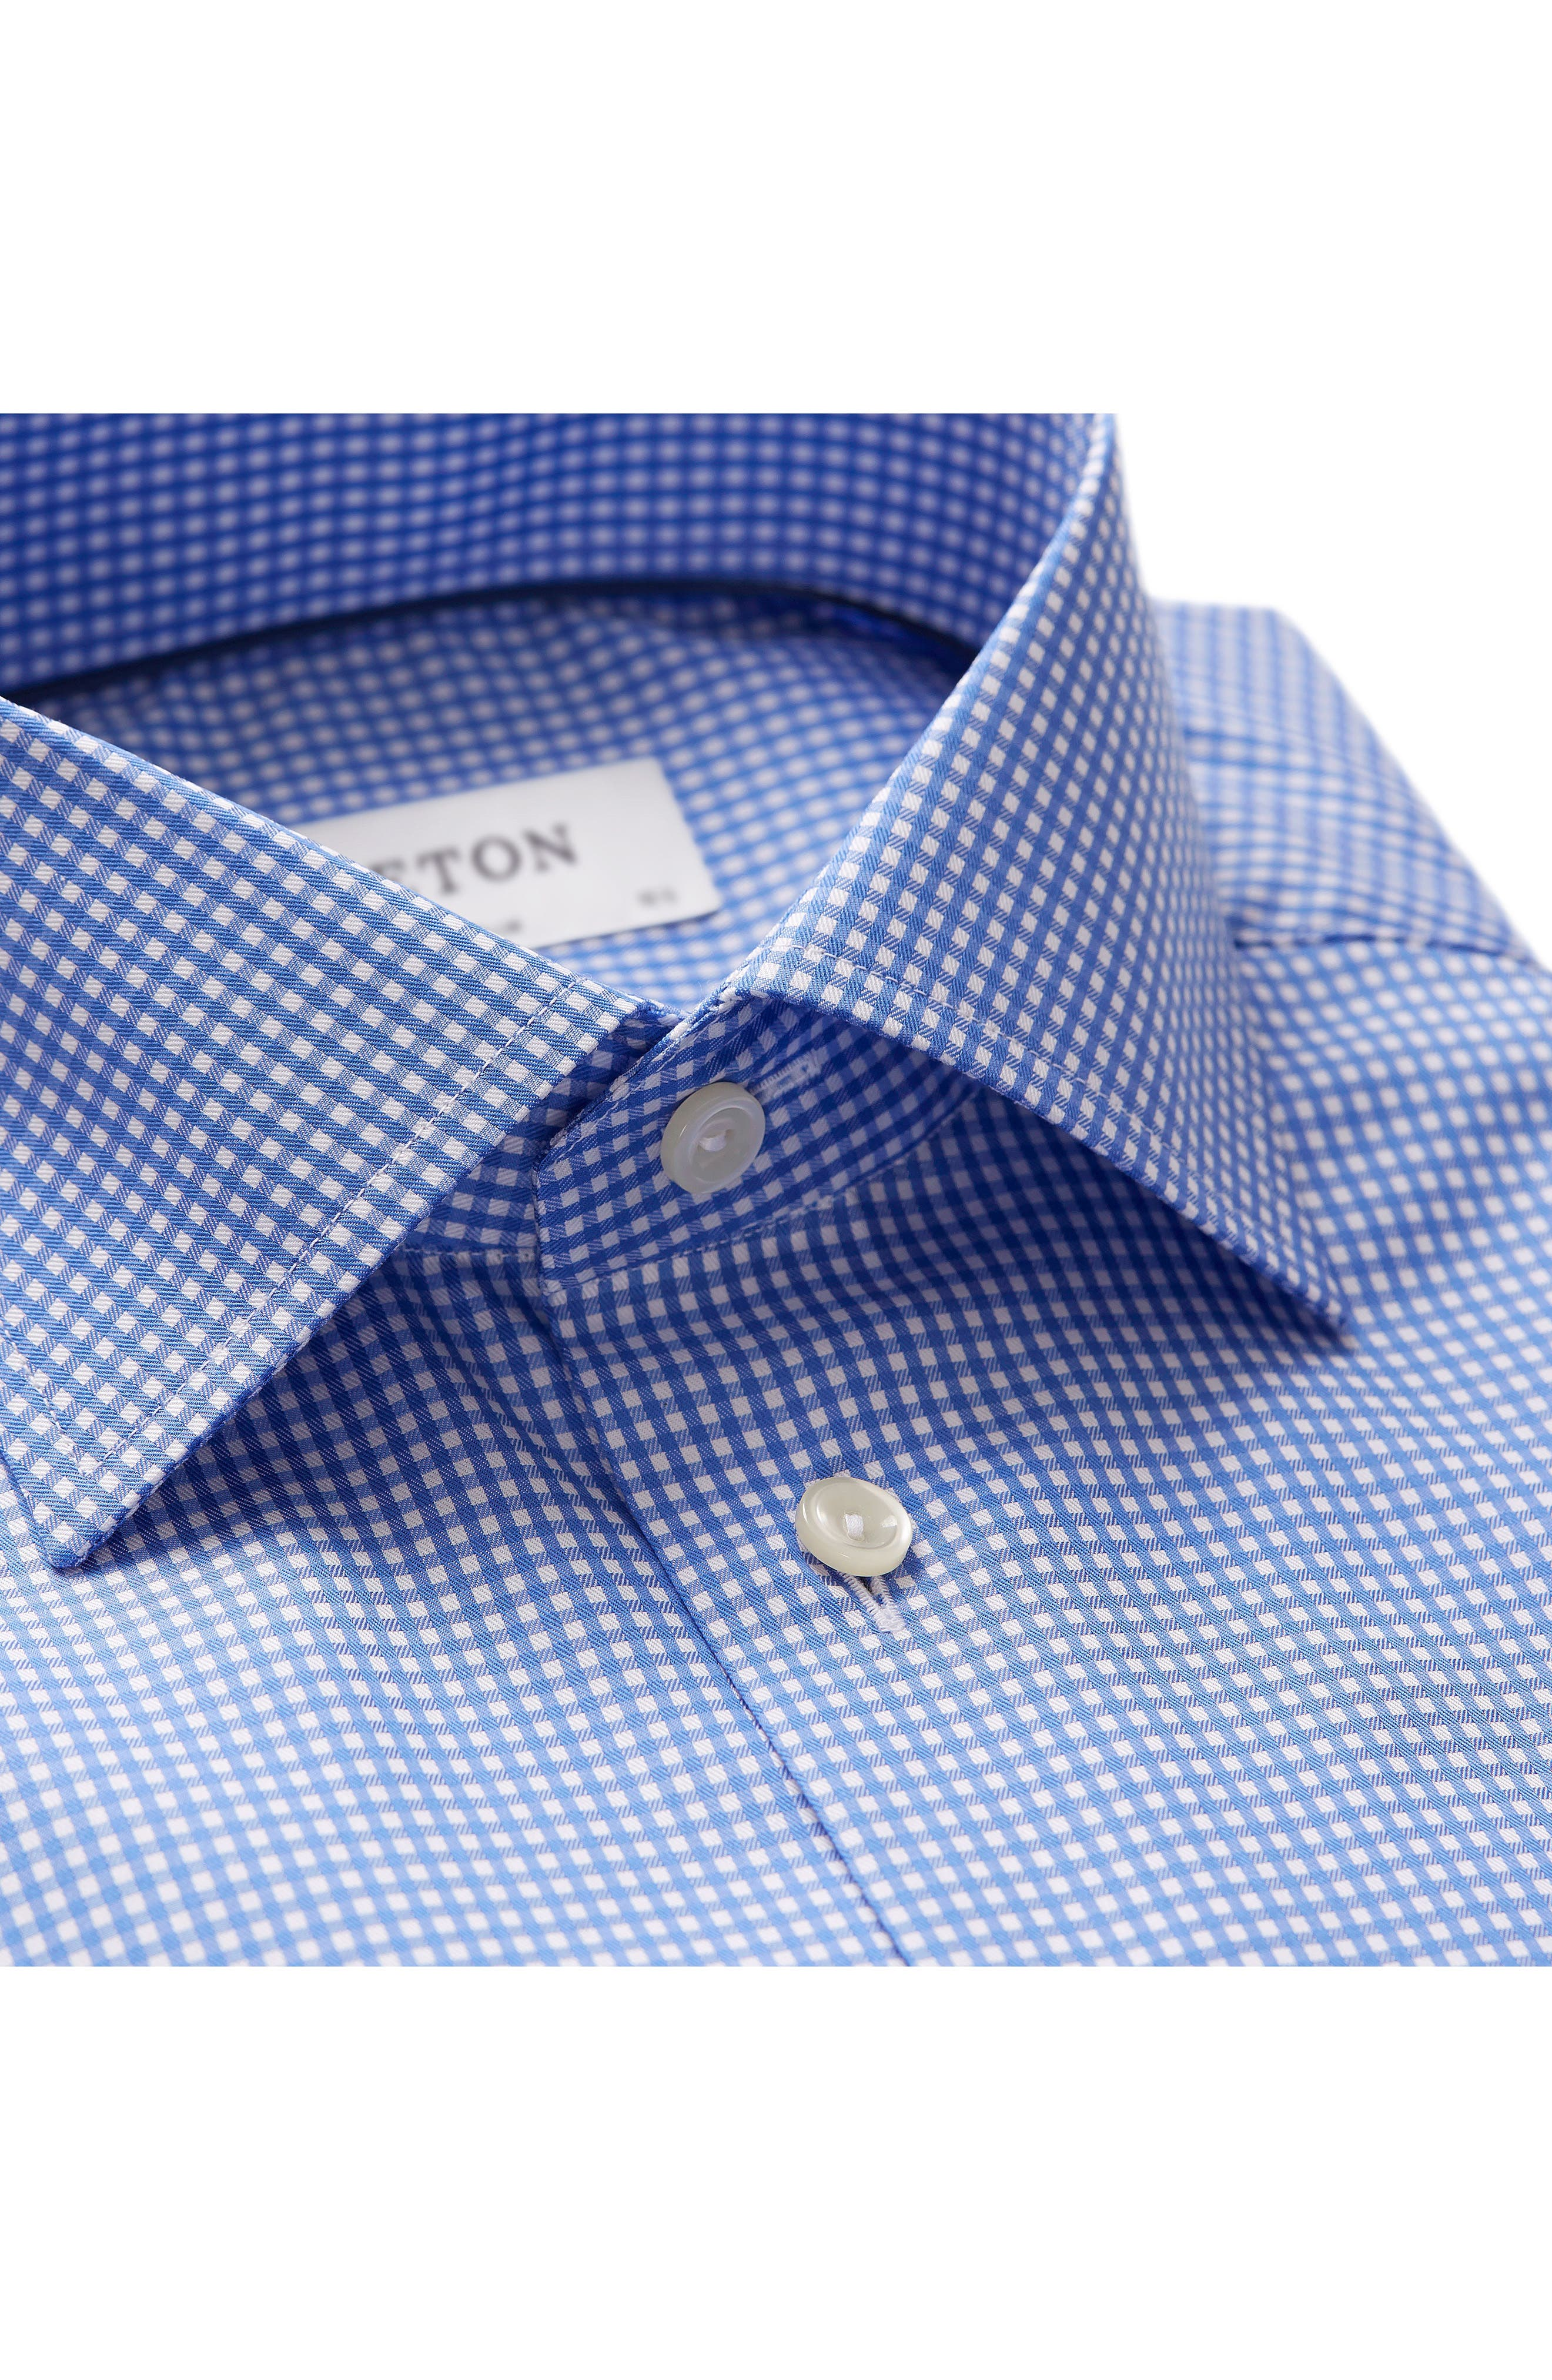 Extra Slim Fit Check Dress Shirt,                             Alternate thumbnail 2, color,                             BLUE/ WHITE